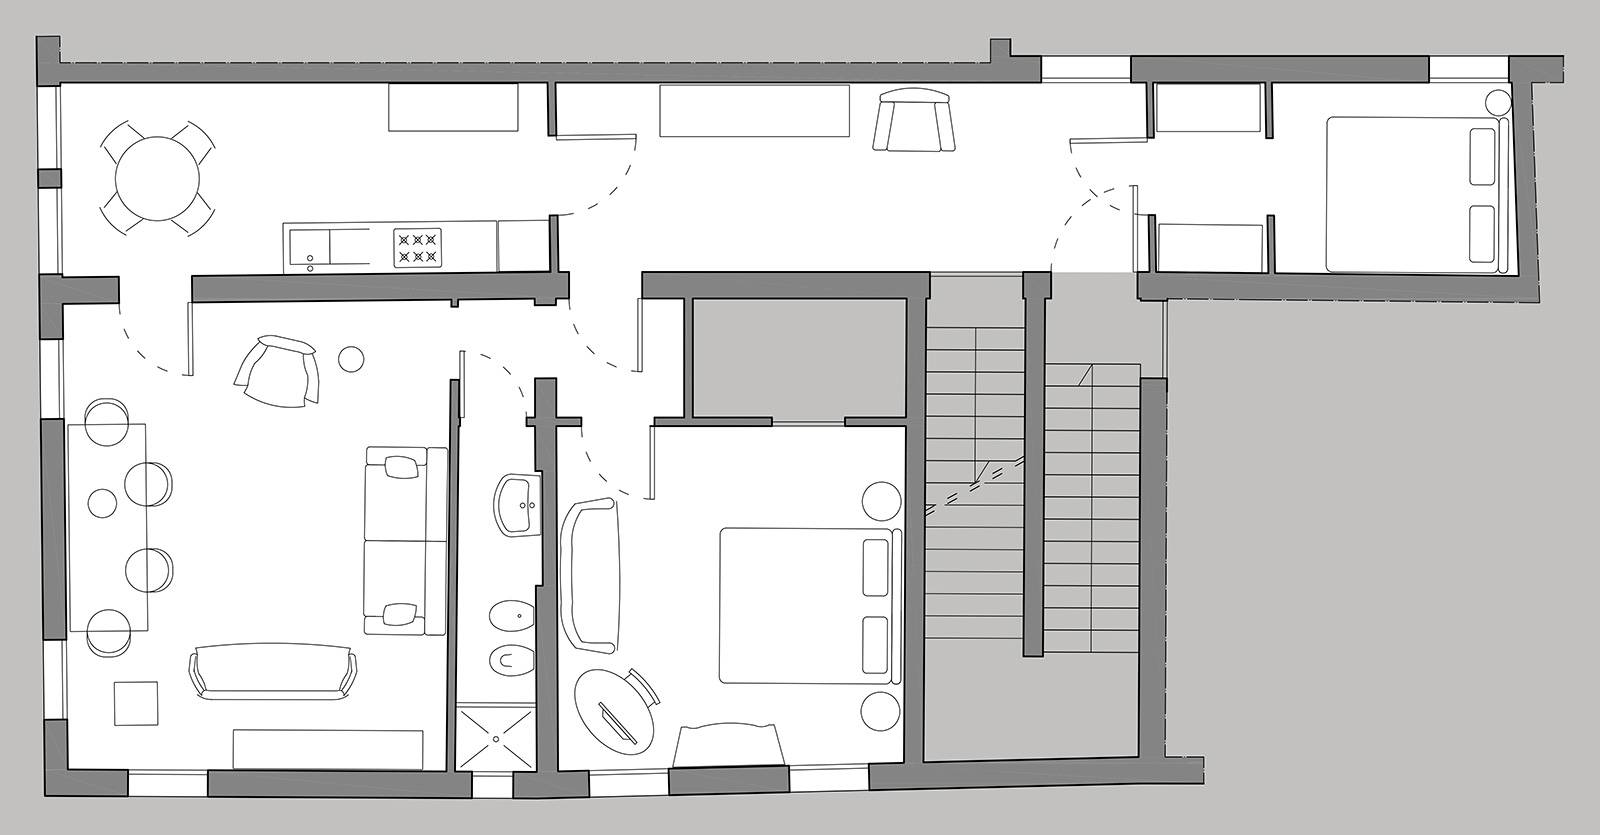 Gritti floor plan